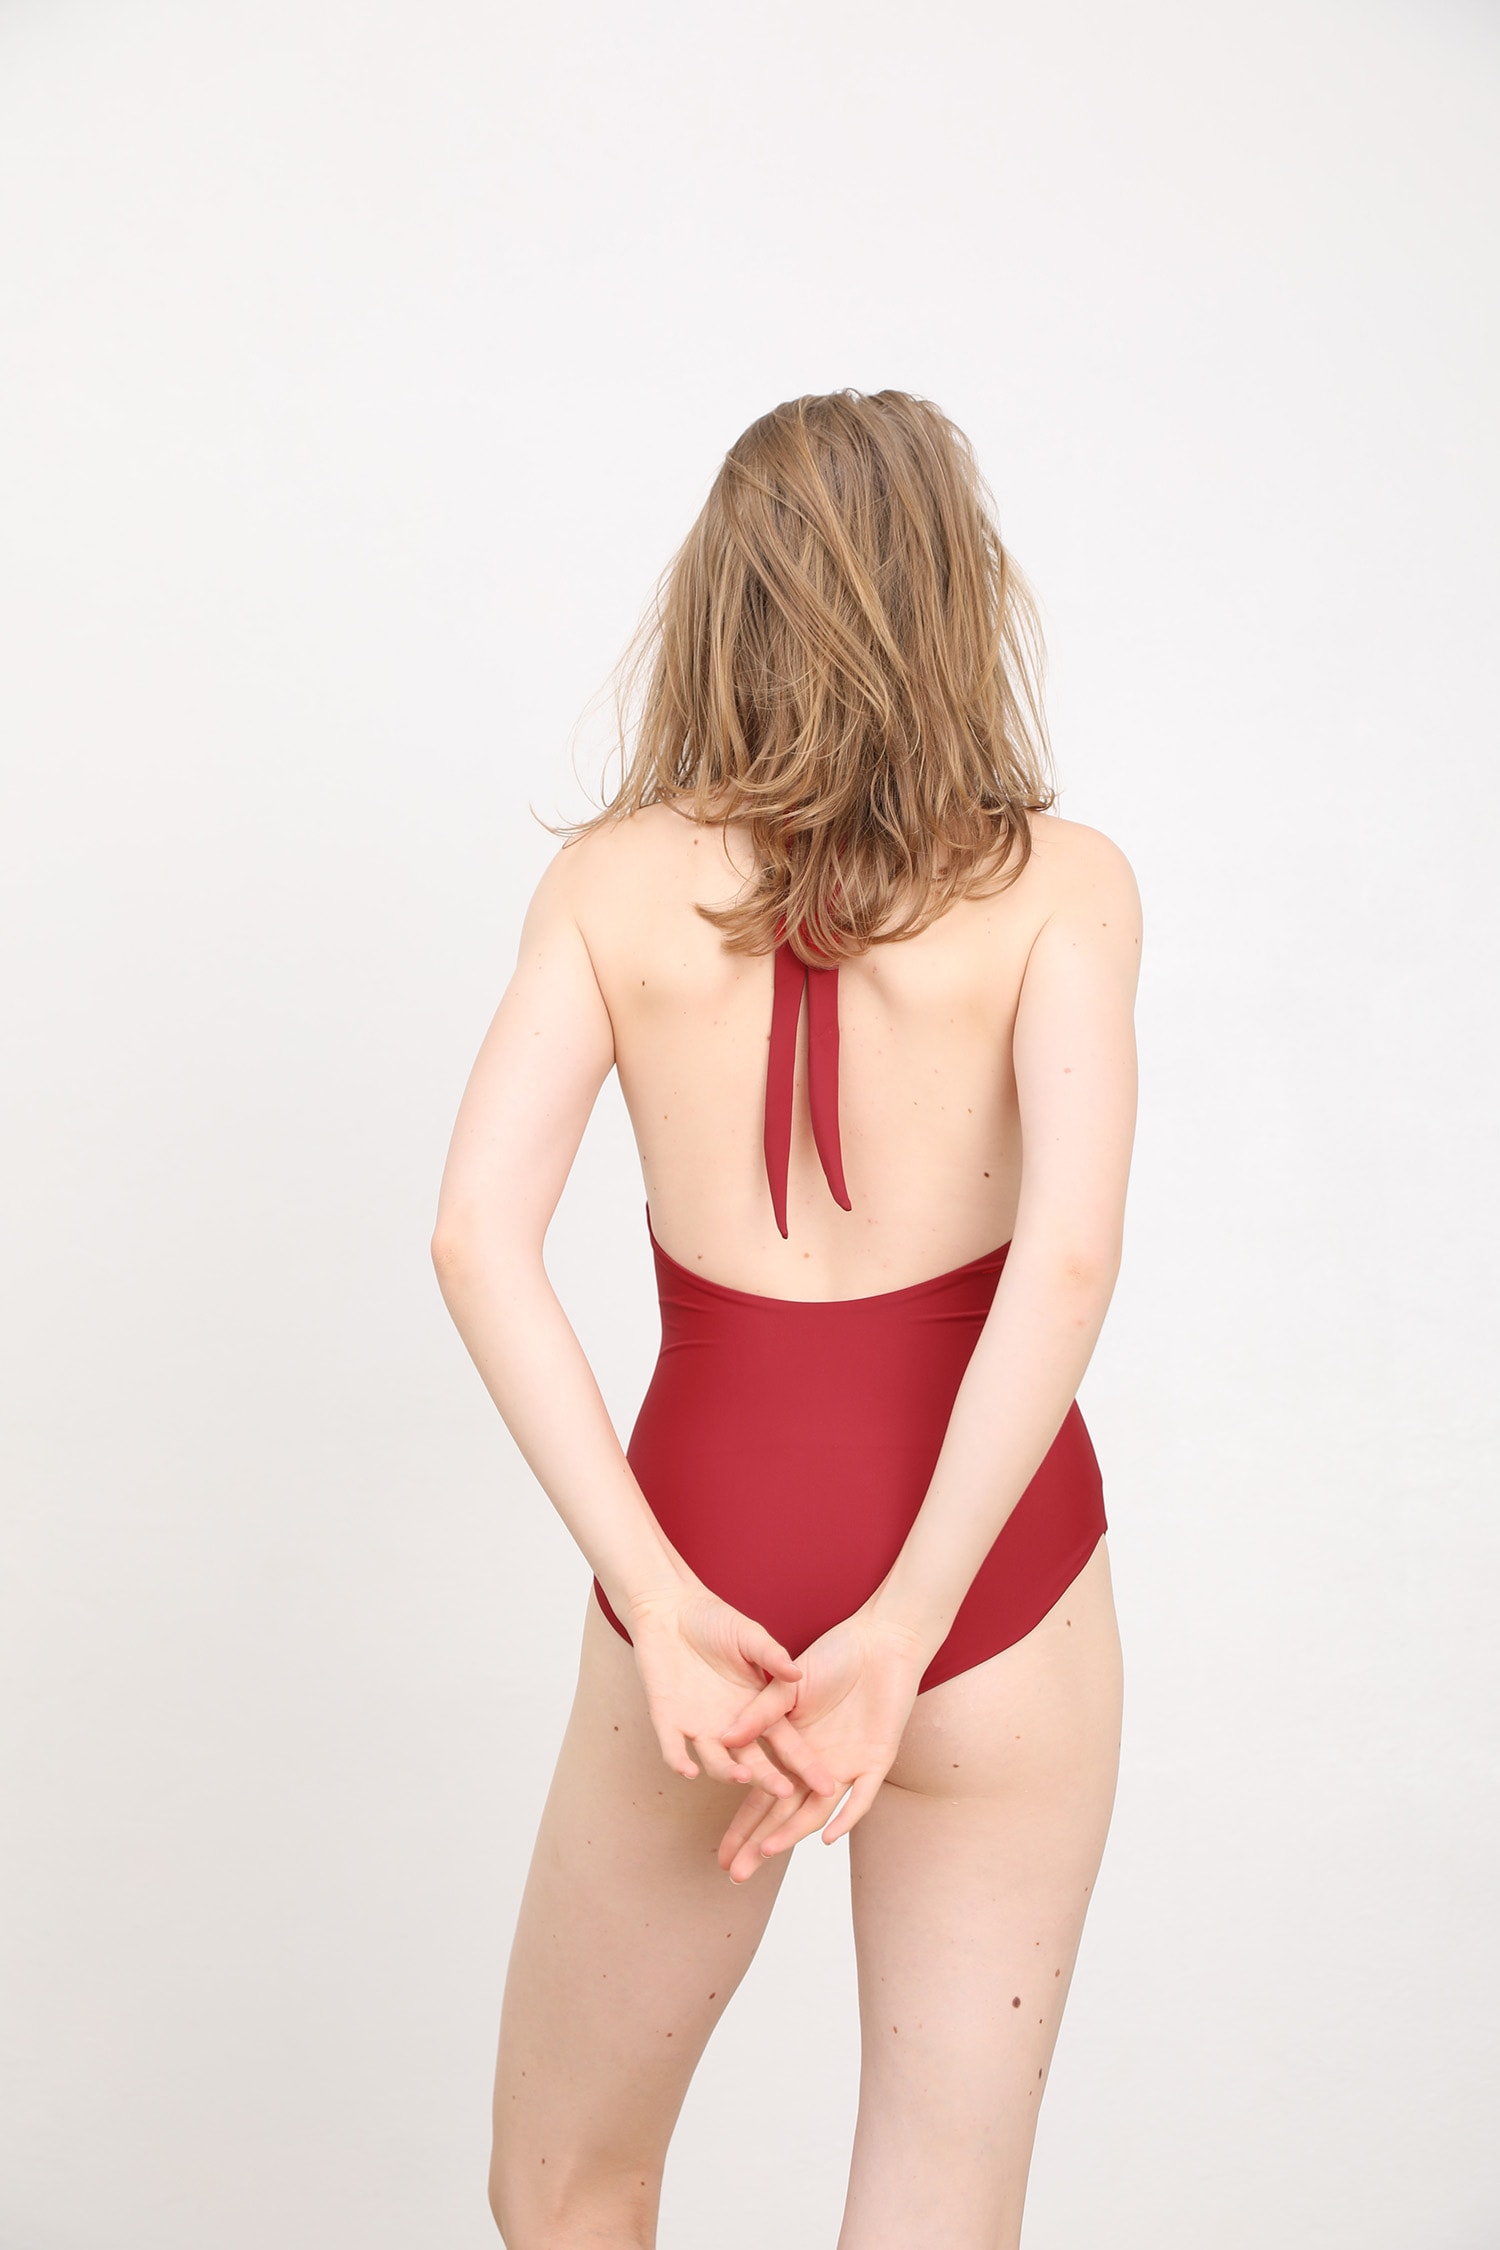 margaret and hermione_ss19_swimsuit no4_dark red_157,00eur_hinten_online